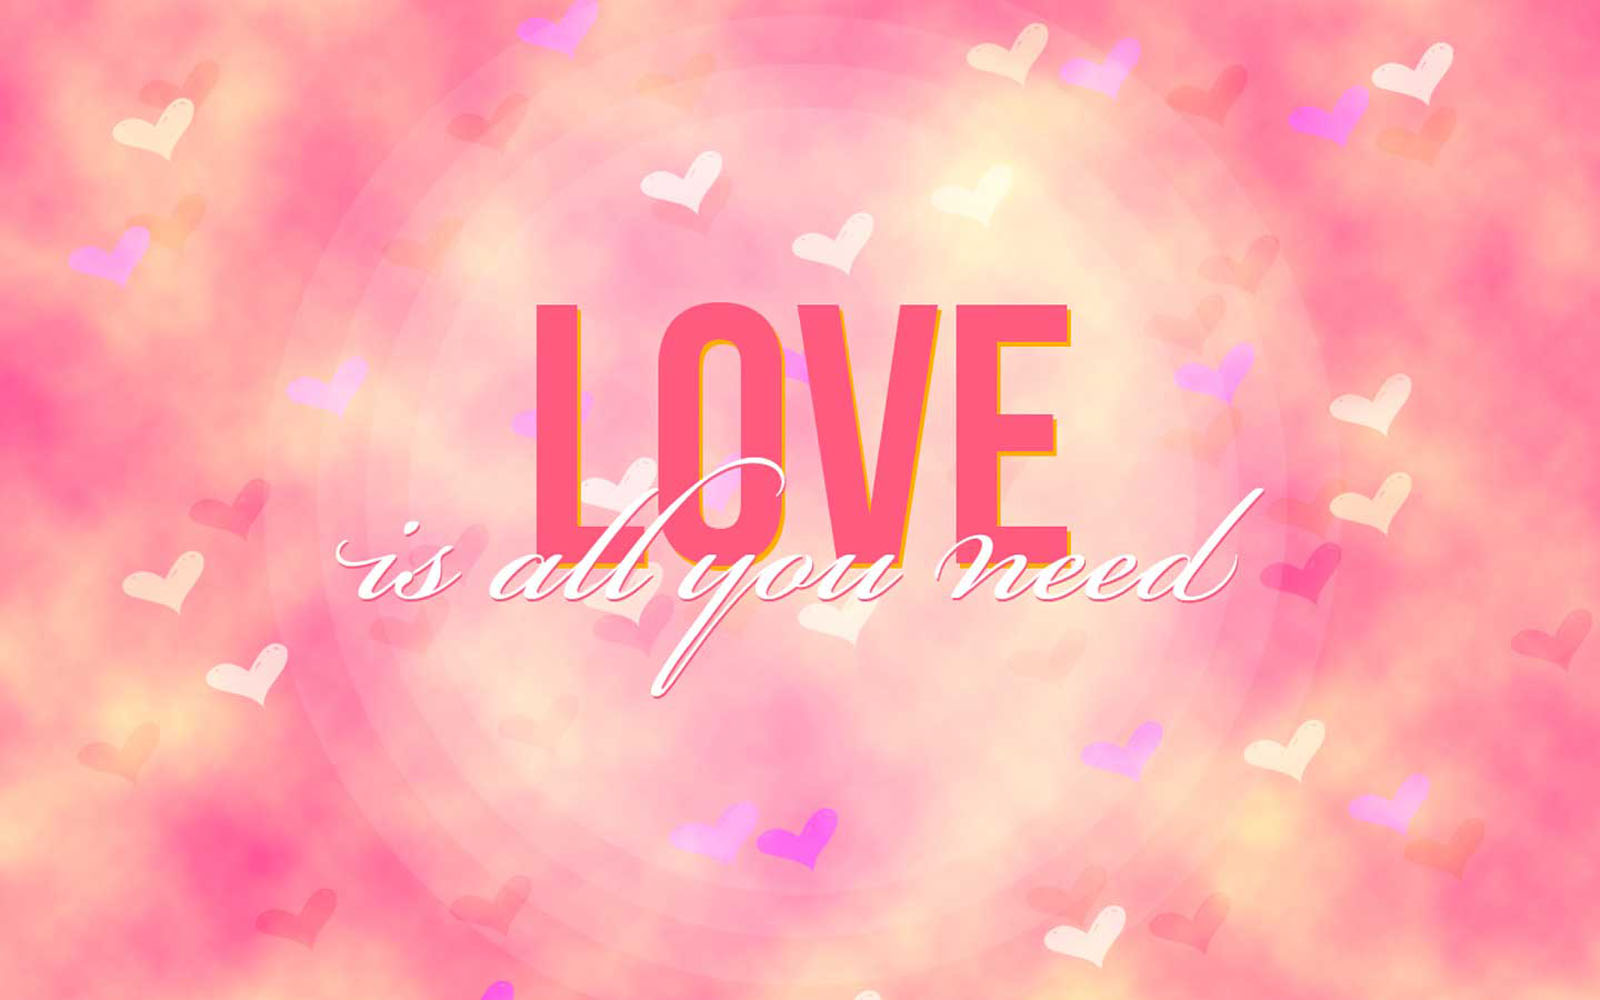 Love Story Wallpaper All : wallpapers: All You Need Is Love Wallpapers